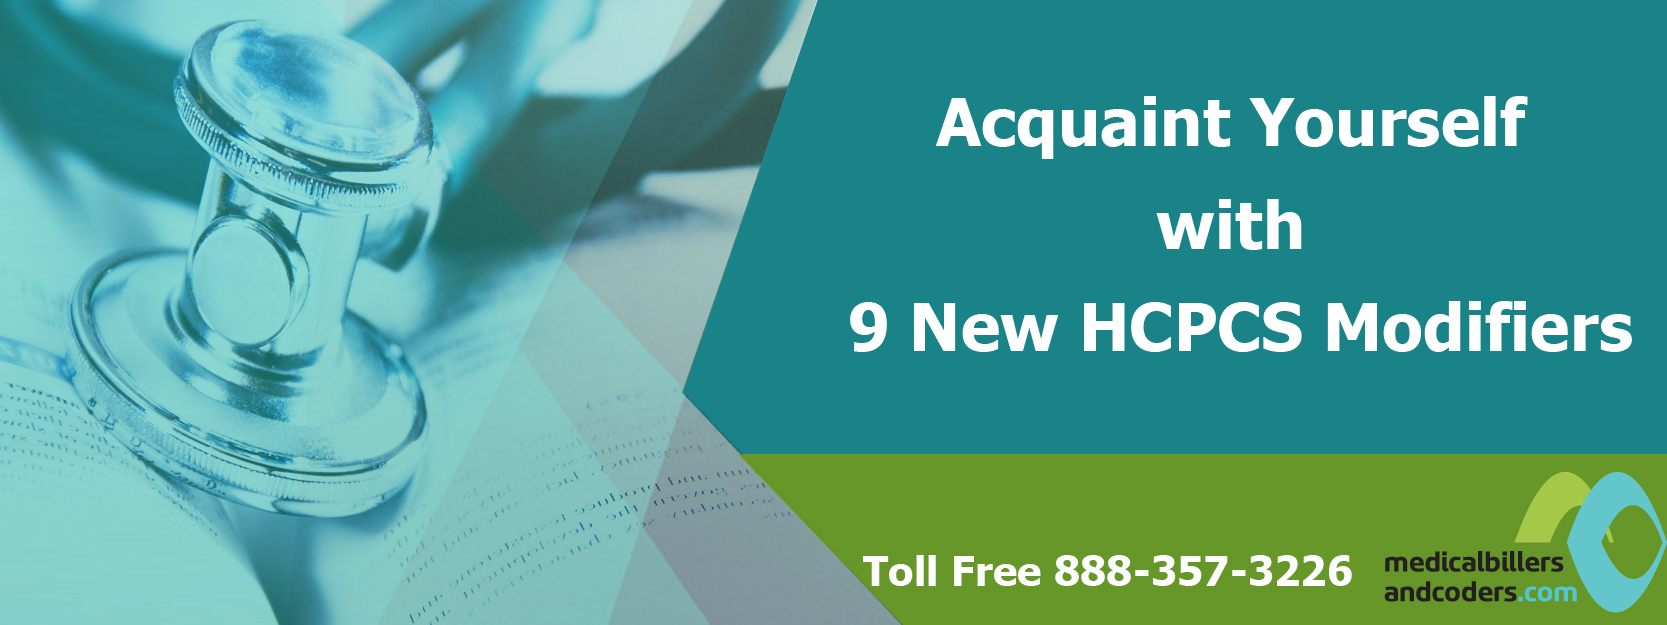 Acquaint-Yourself-with-9-New-HCPCS-Modifiers